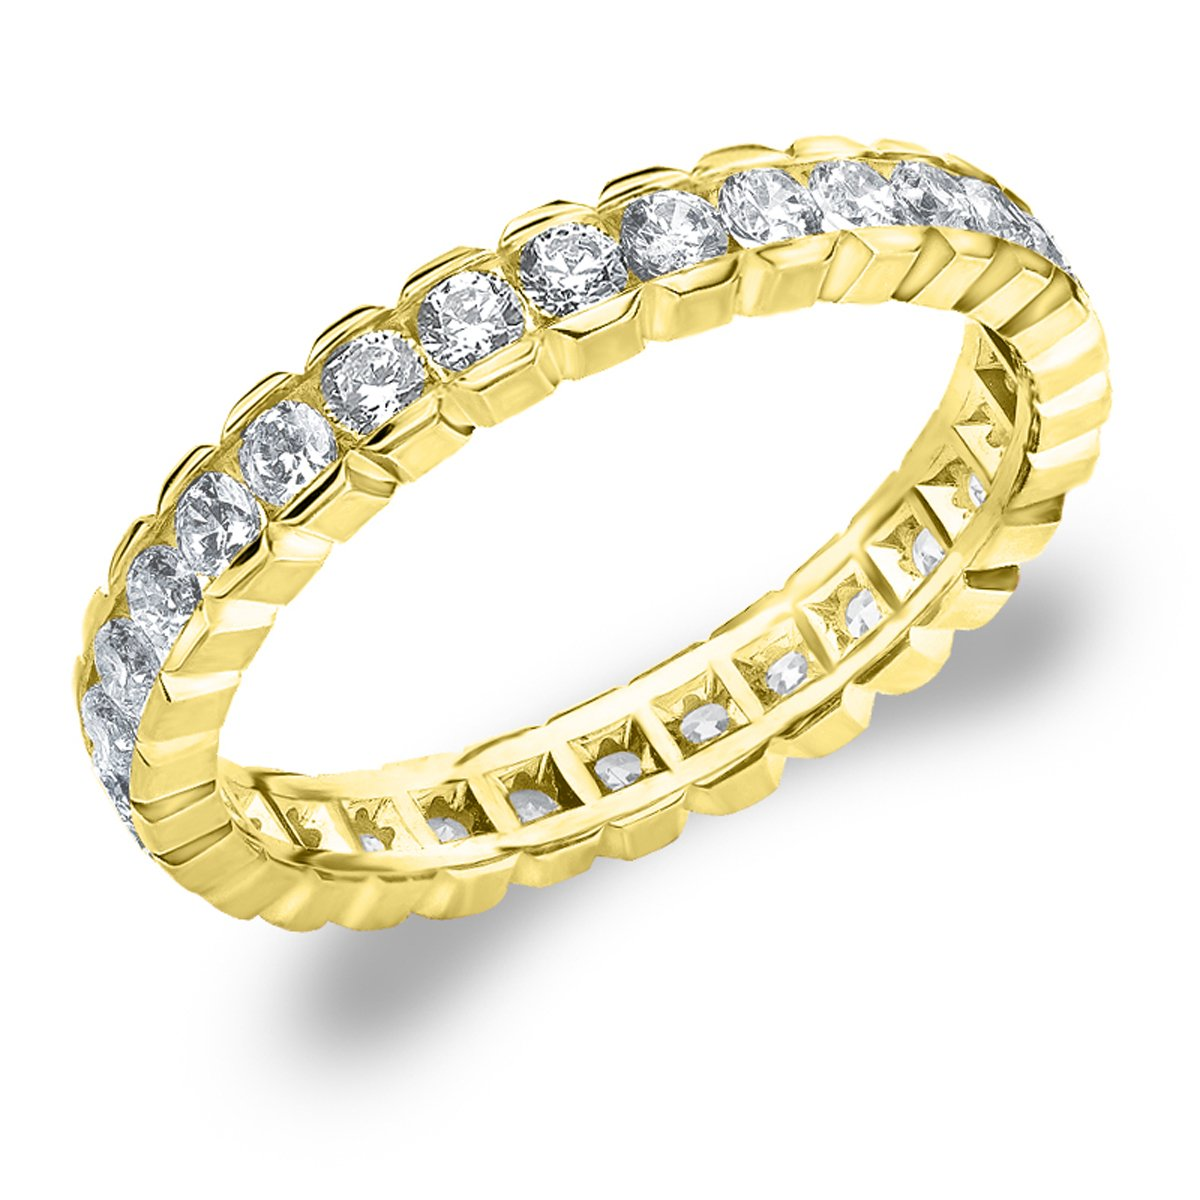 Eternity Wedding Bands 1.0 CTTW Diamond Eternity Ring, 1ct Wedding Anniversary Ring in 10K Yellow Gold - Finger Size 8